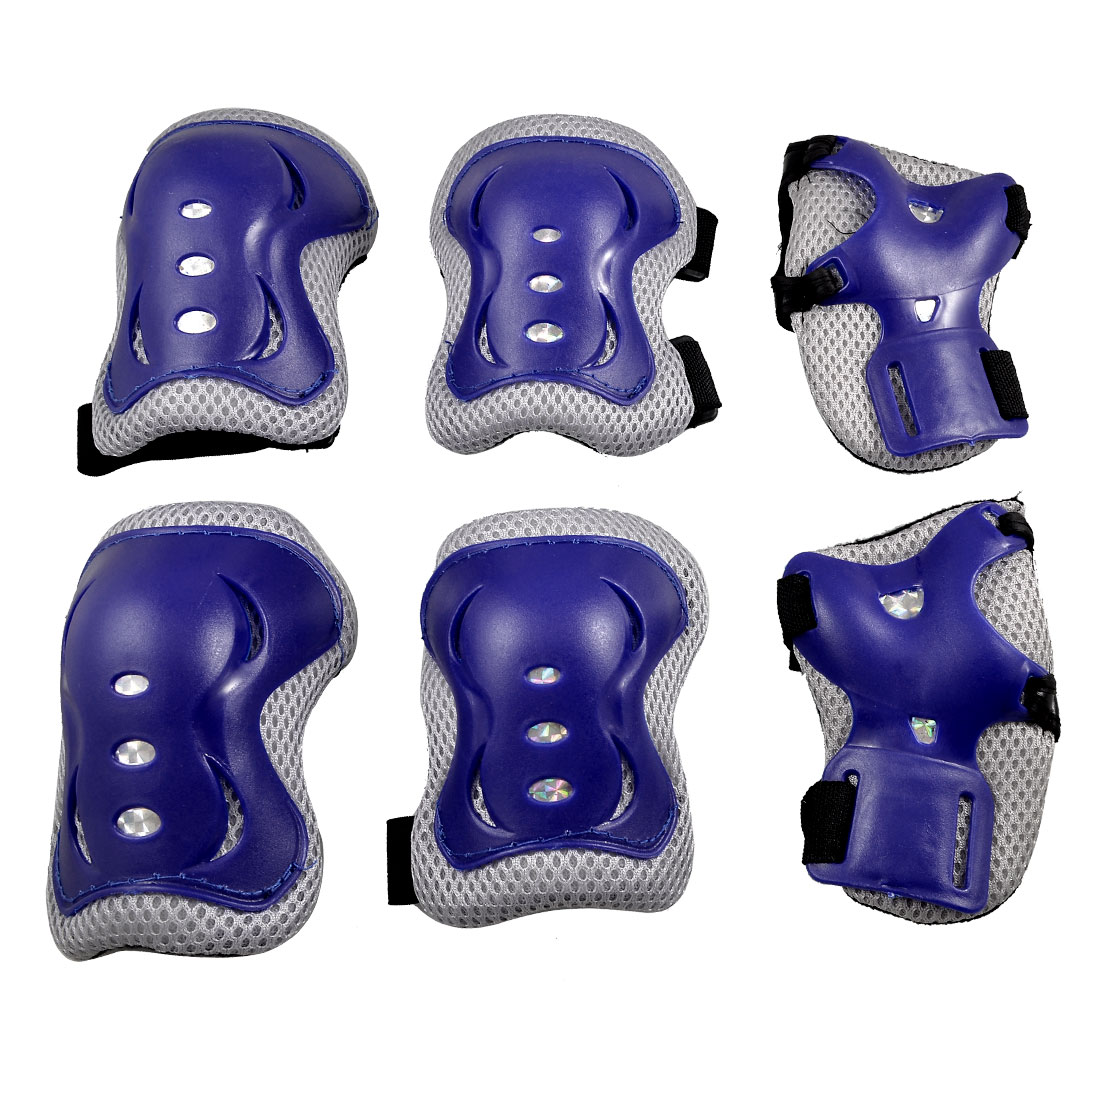 Skating Gear Blue Knee Elbow Pads Wrist Protector Set for Children Kids